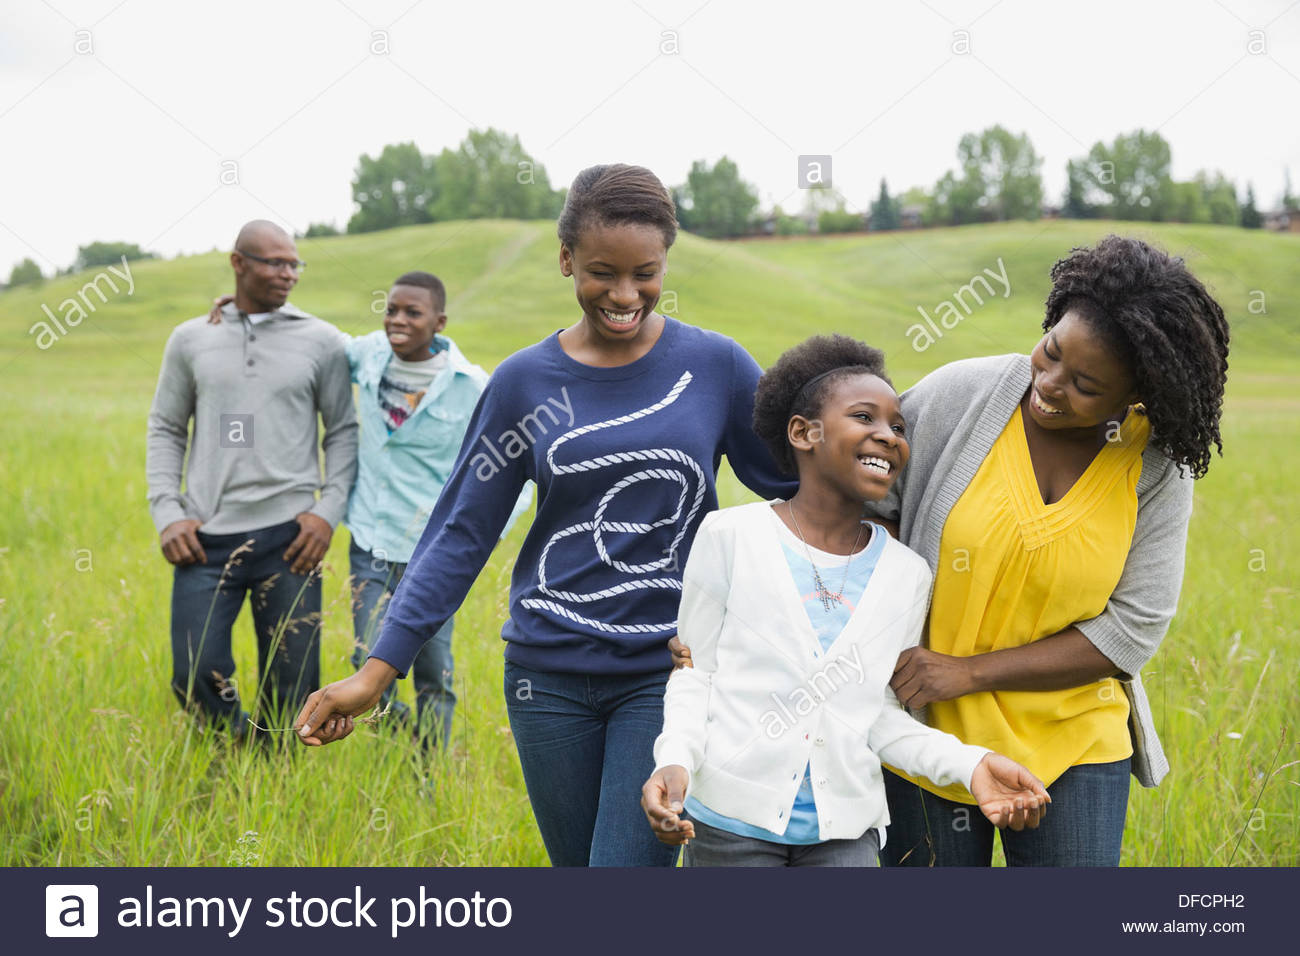 Family walking together through field - Stock Image